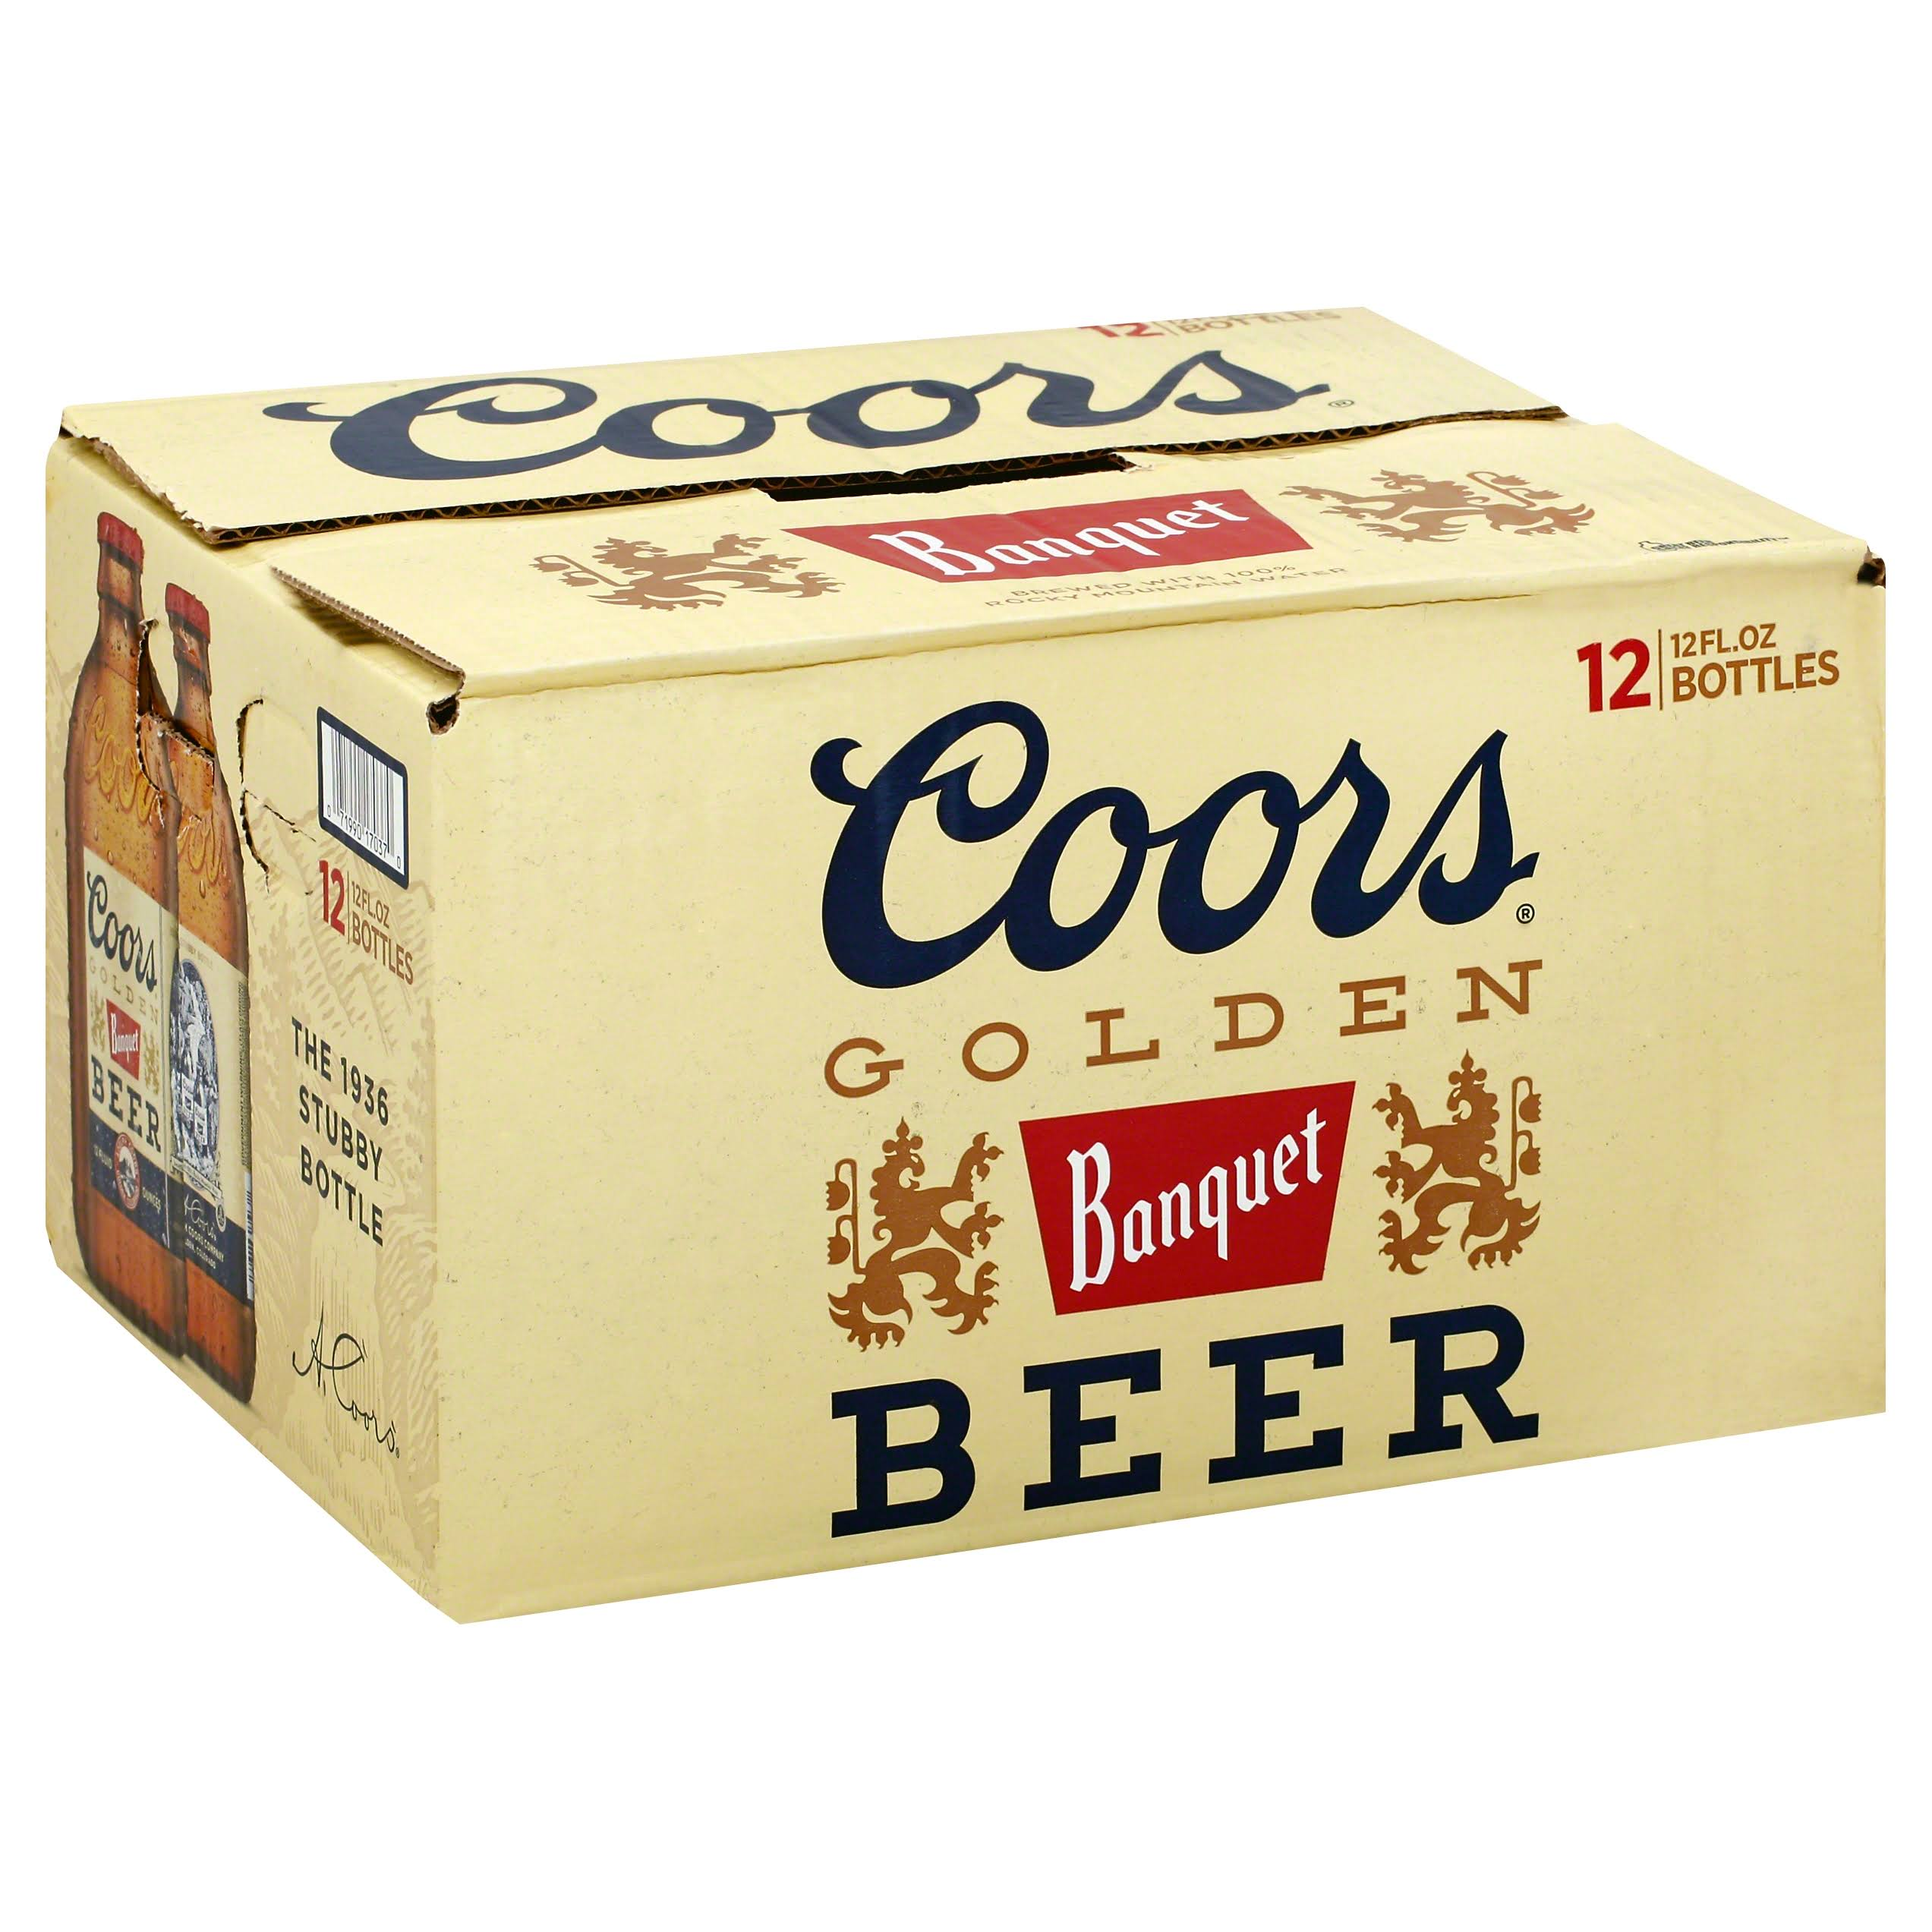 Coors Golden Banquet Beer